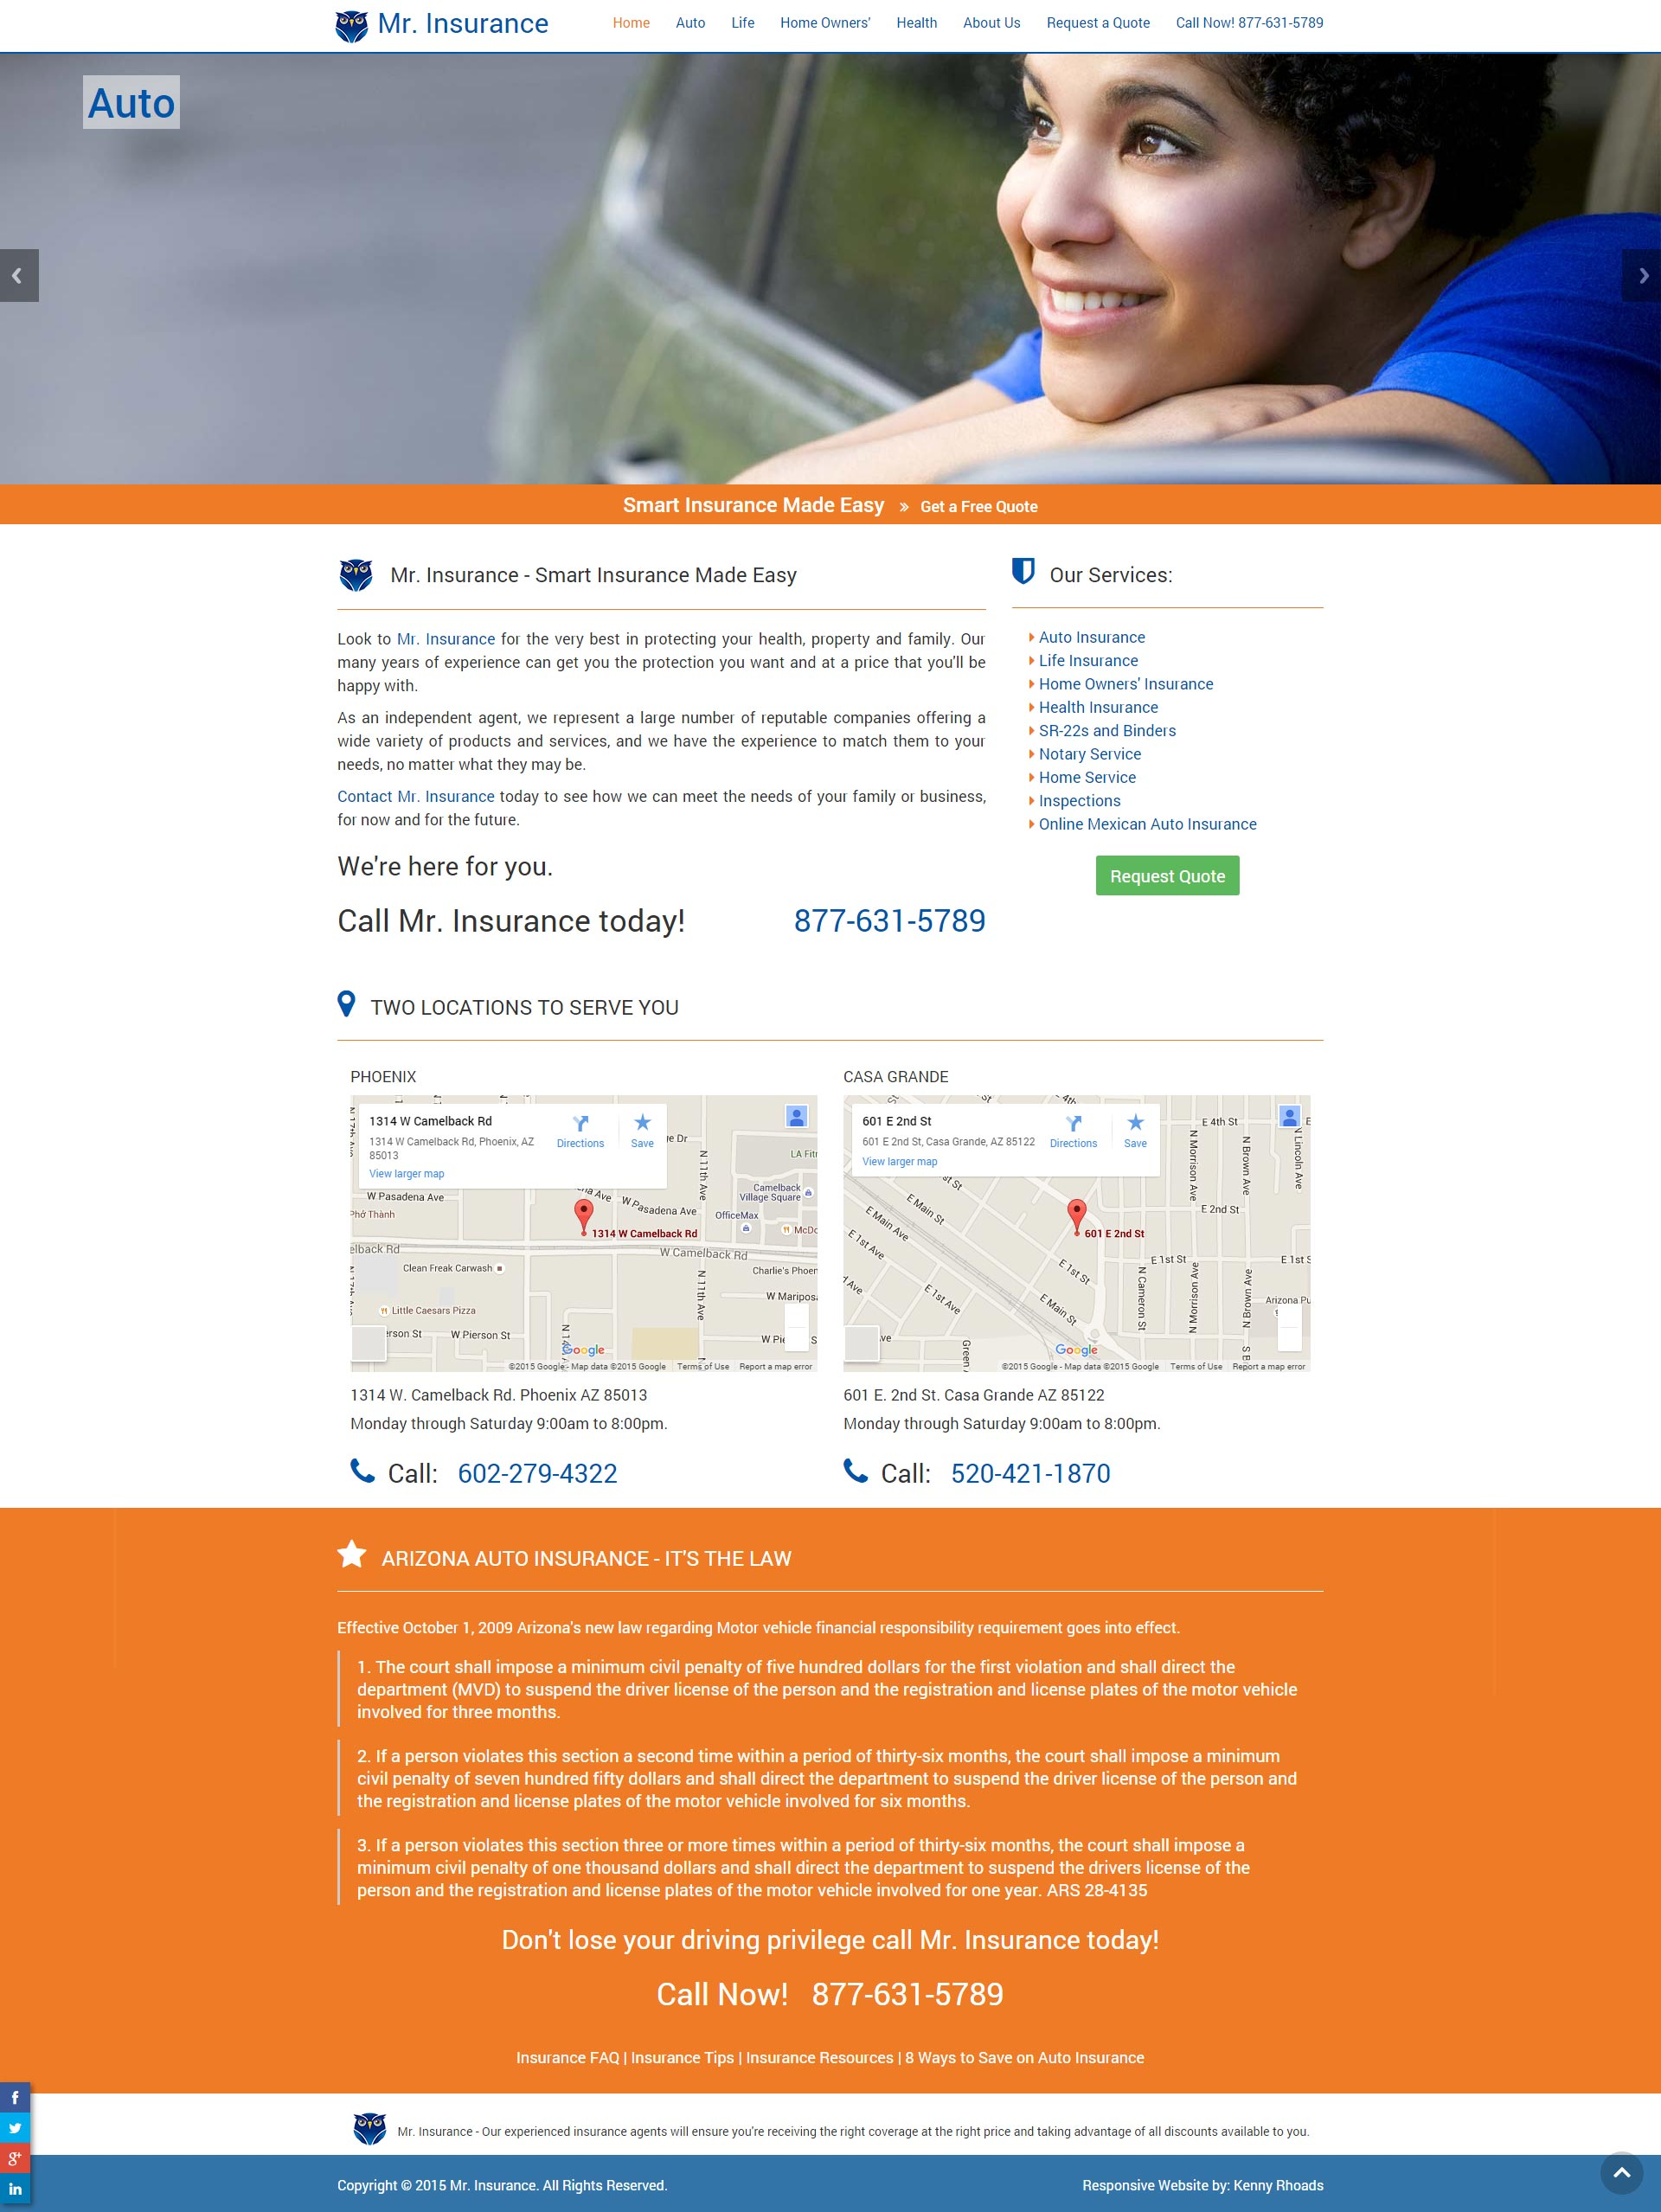 NEW SITE for Mr. Insurance